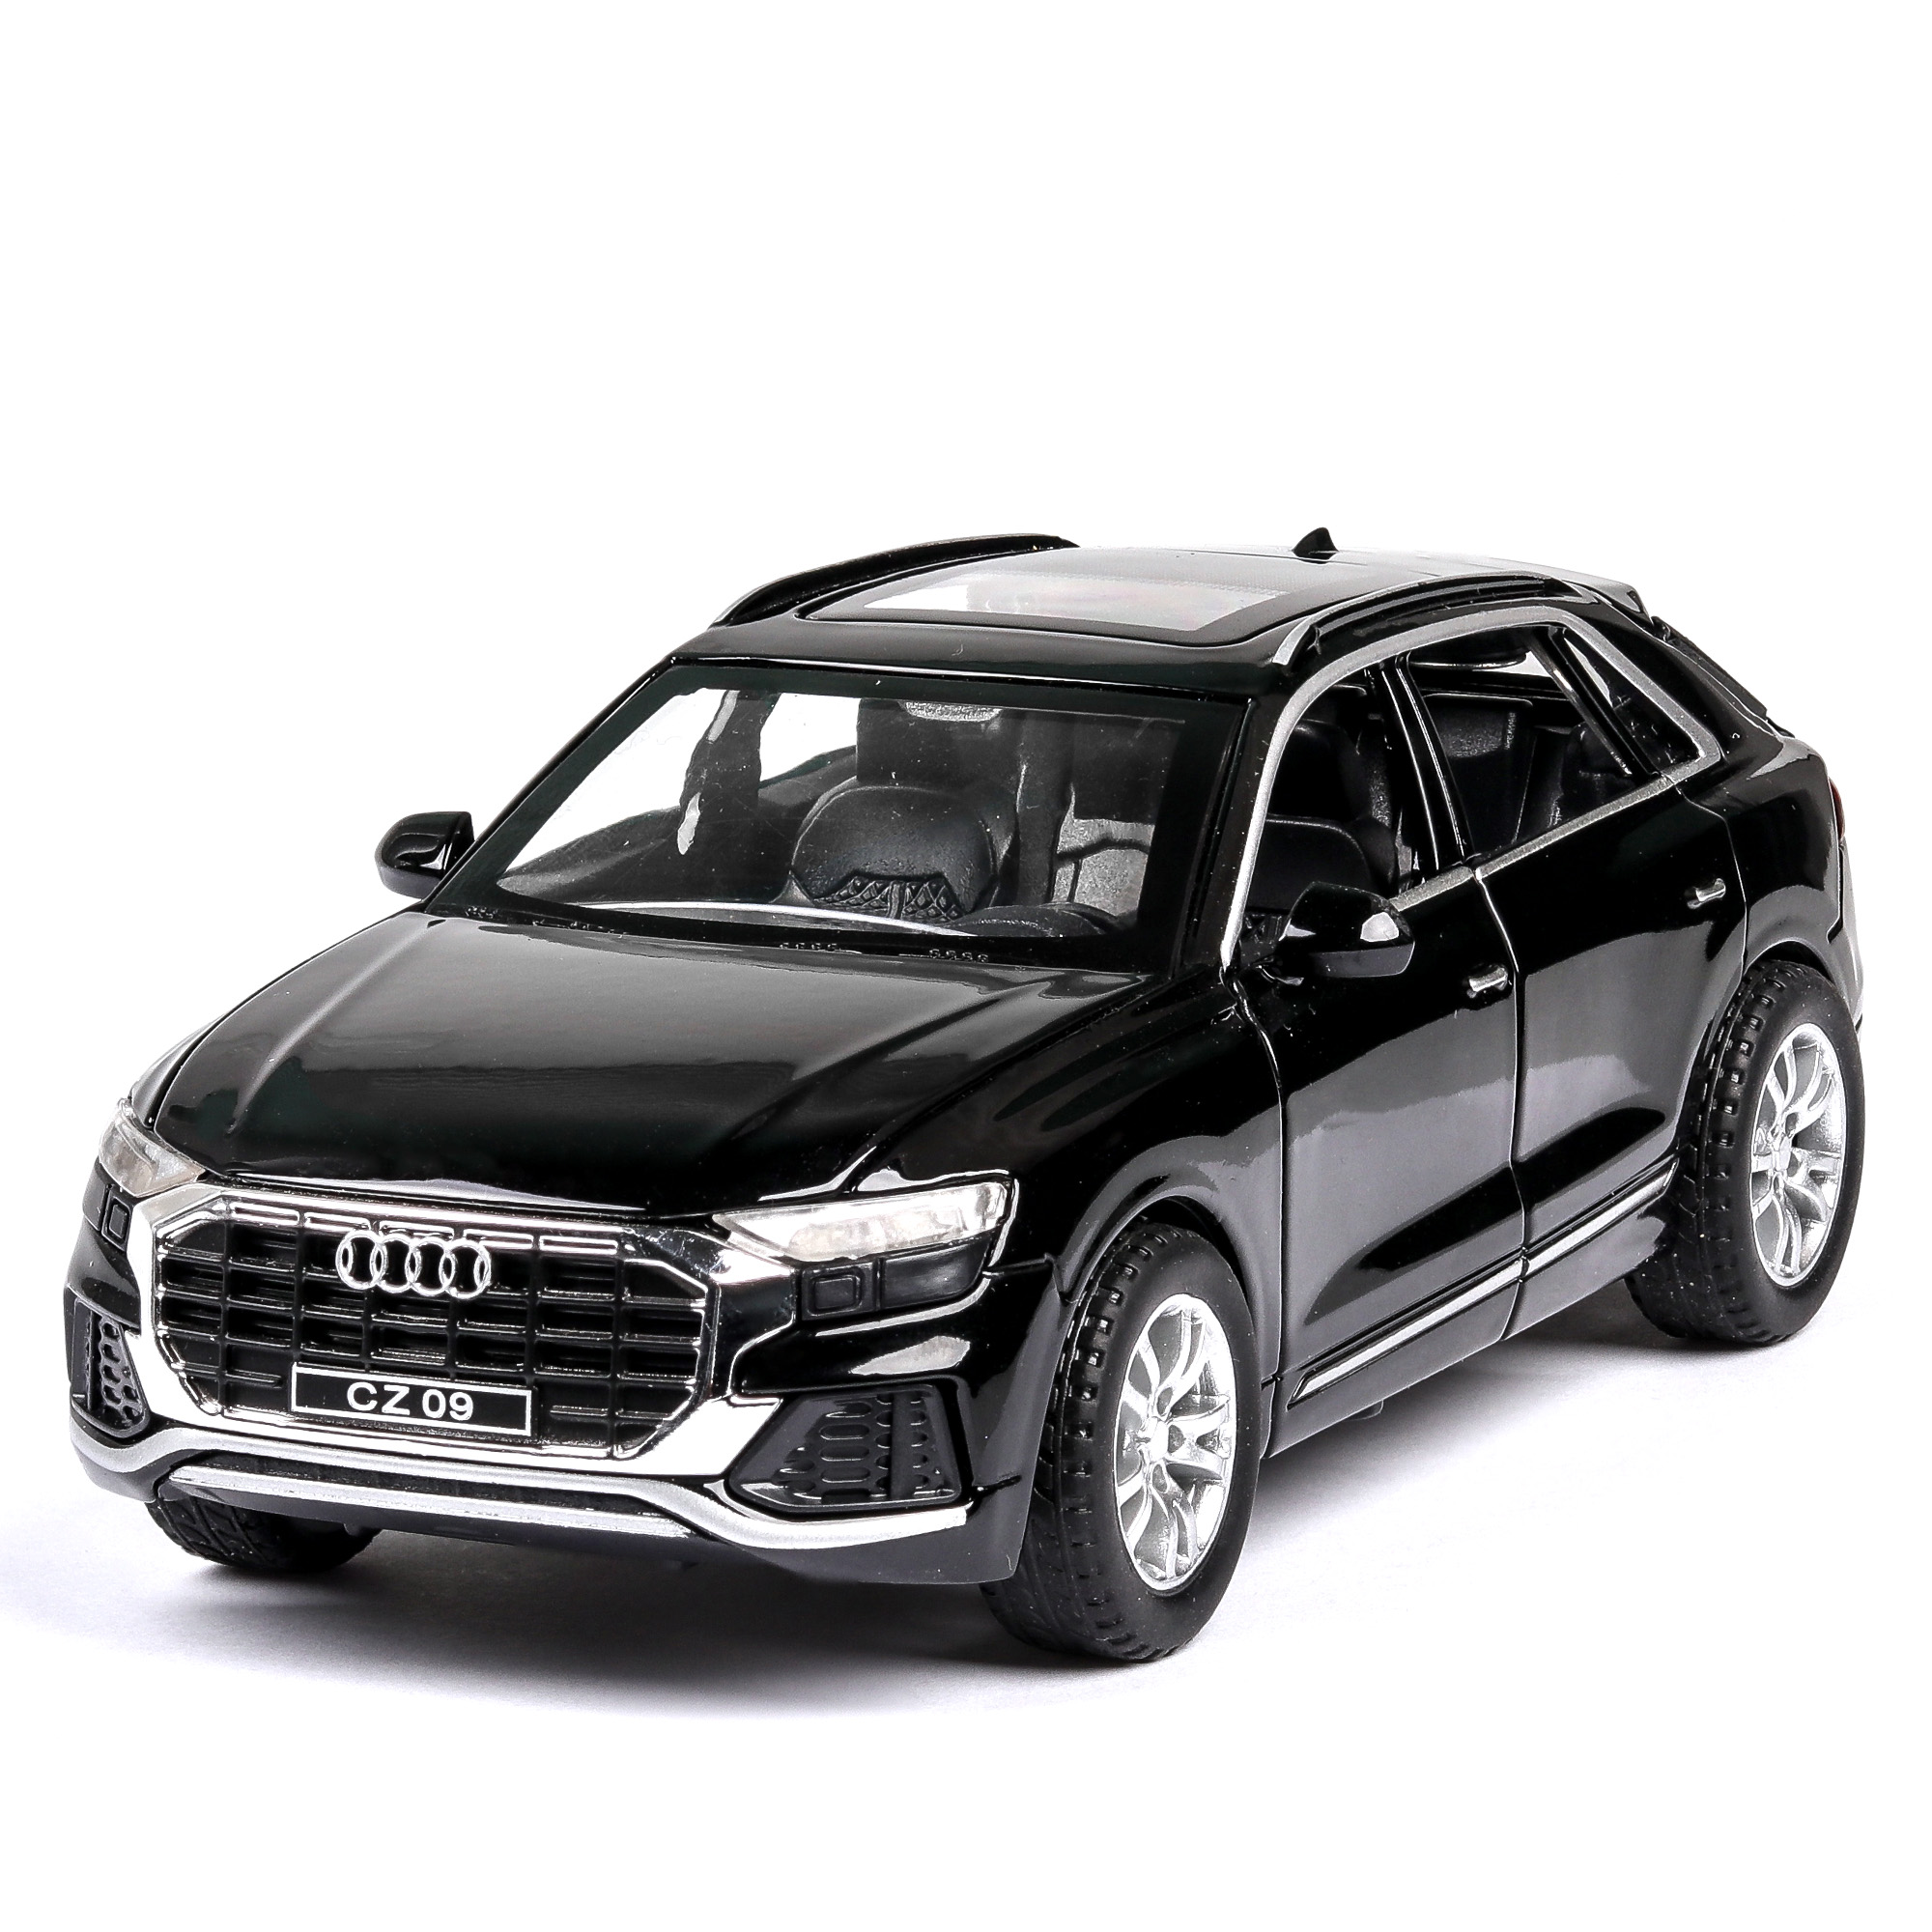 1/32 AUDI Q8 Alloy metal car Model diecast toys for kids collection/Die Cast Vehicles pull-back vehicle kids gift car model #ZW